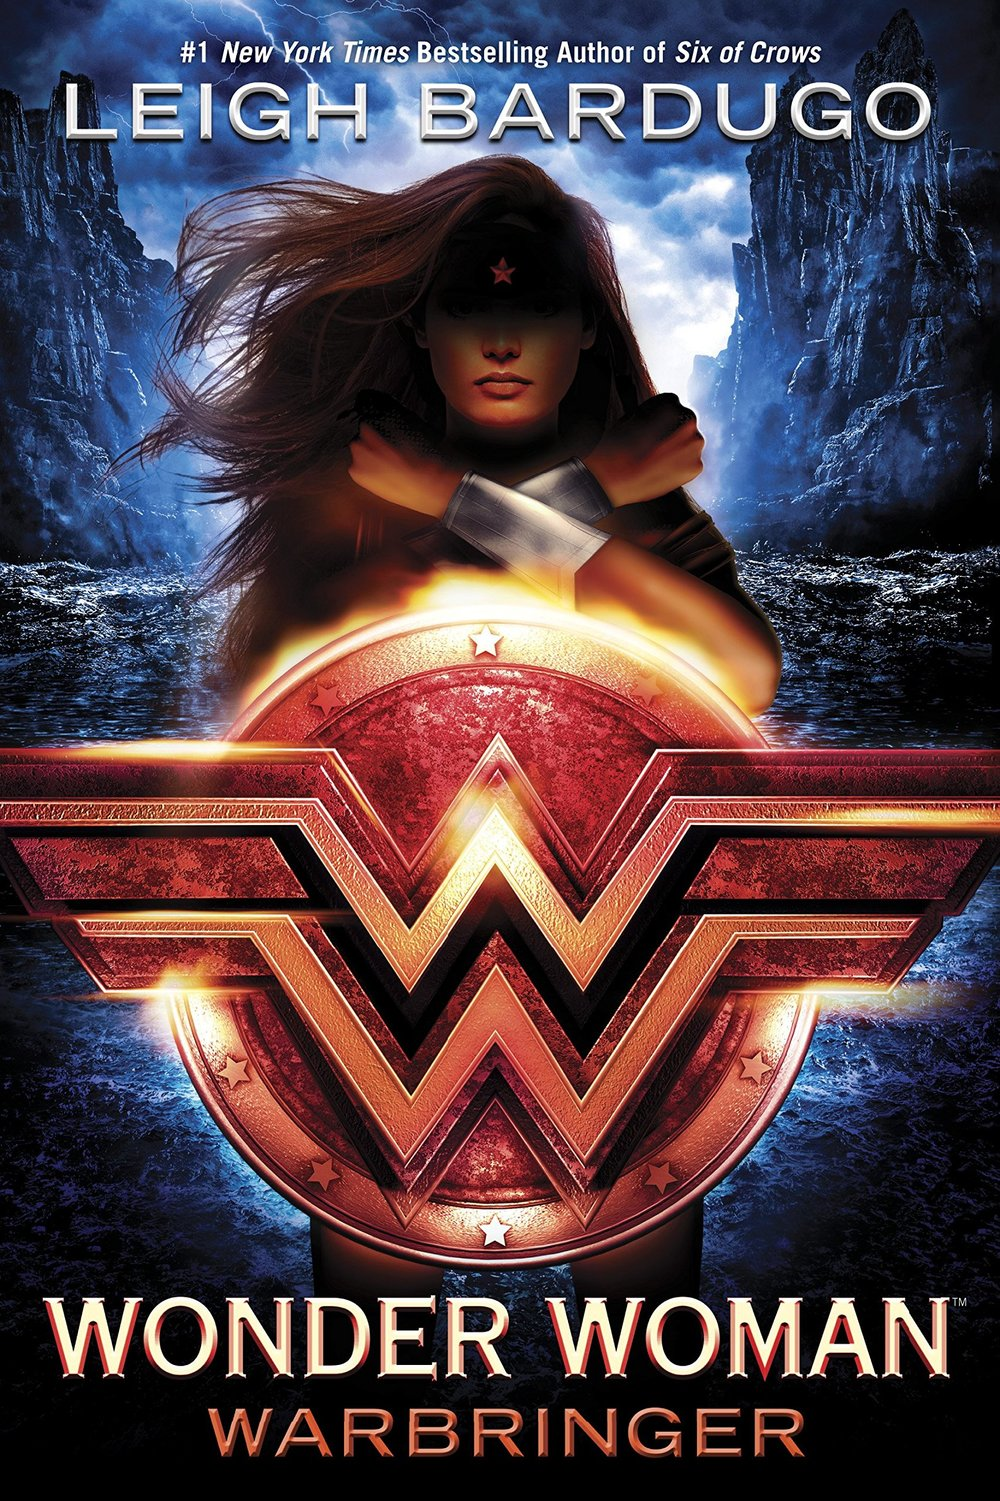 leigh-bardugo-wonder-woman-warbringer.jpg